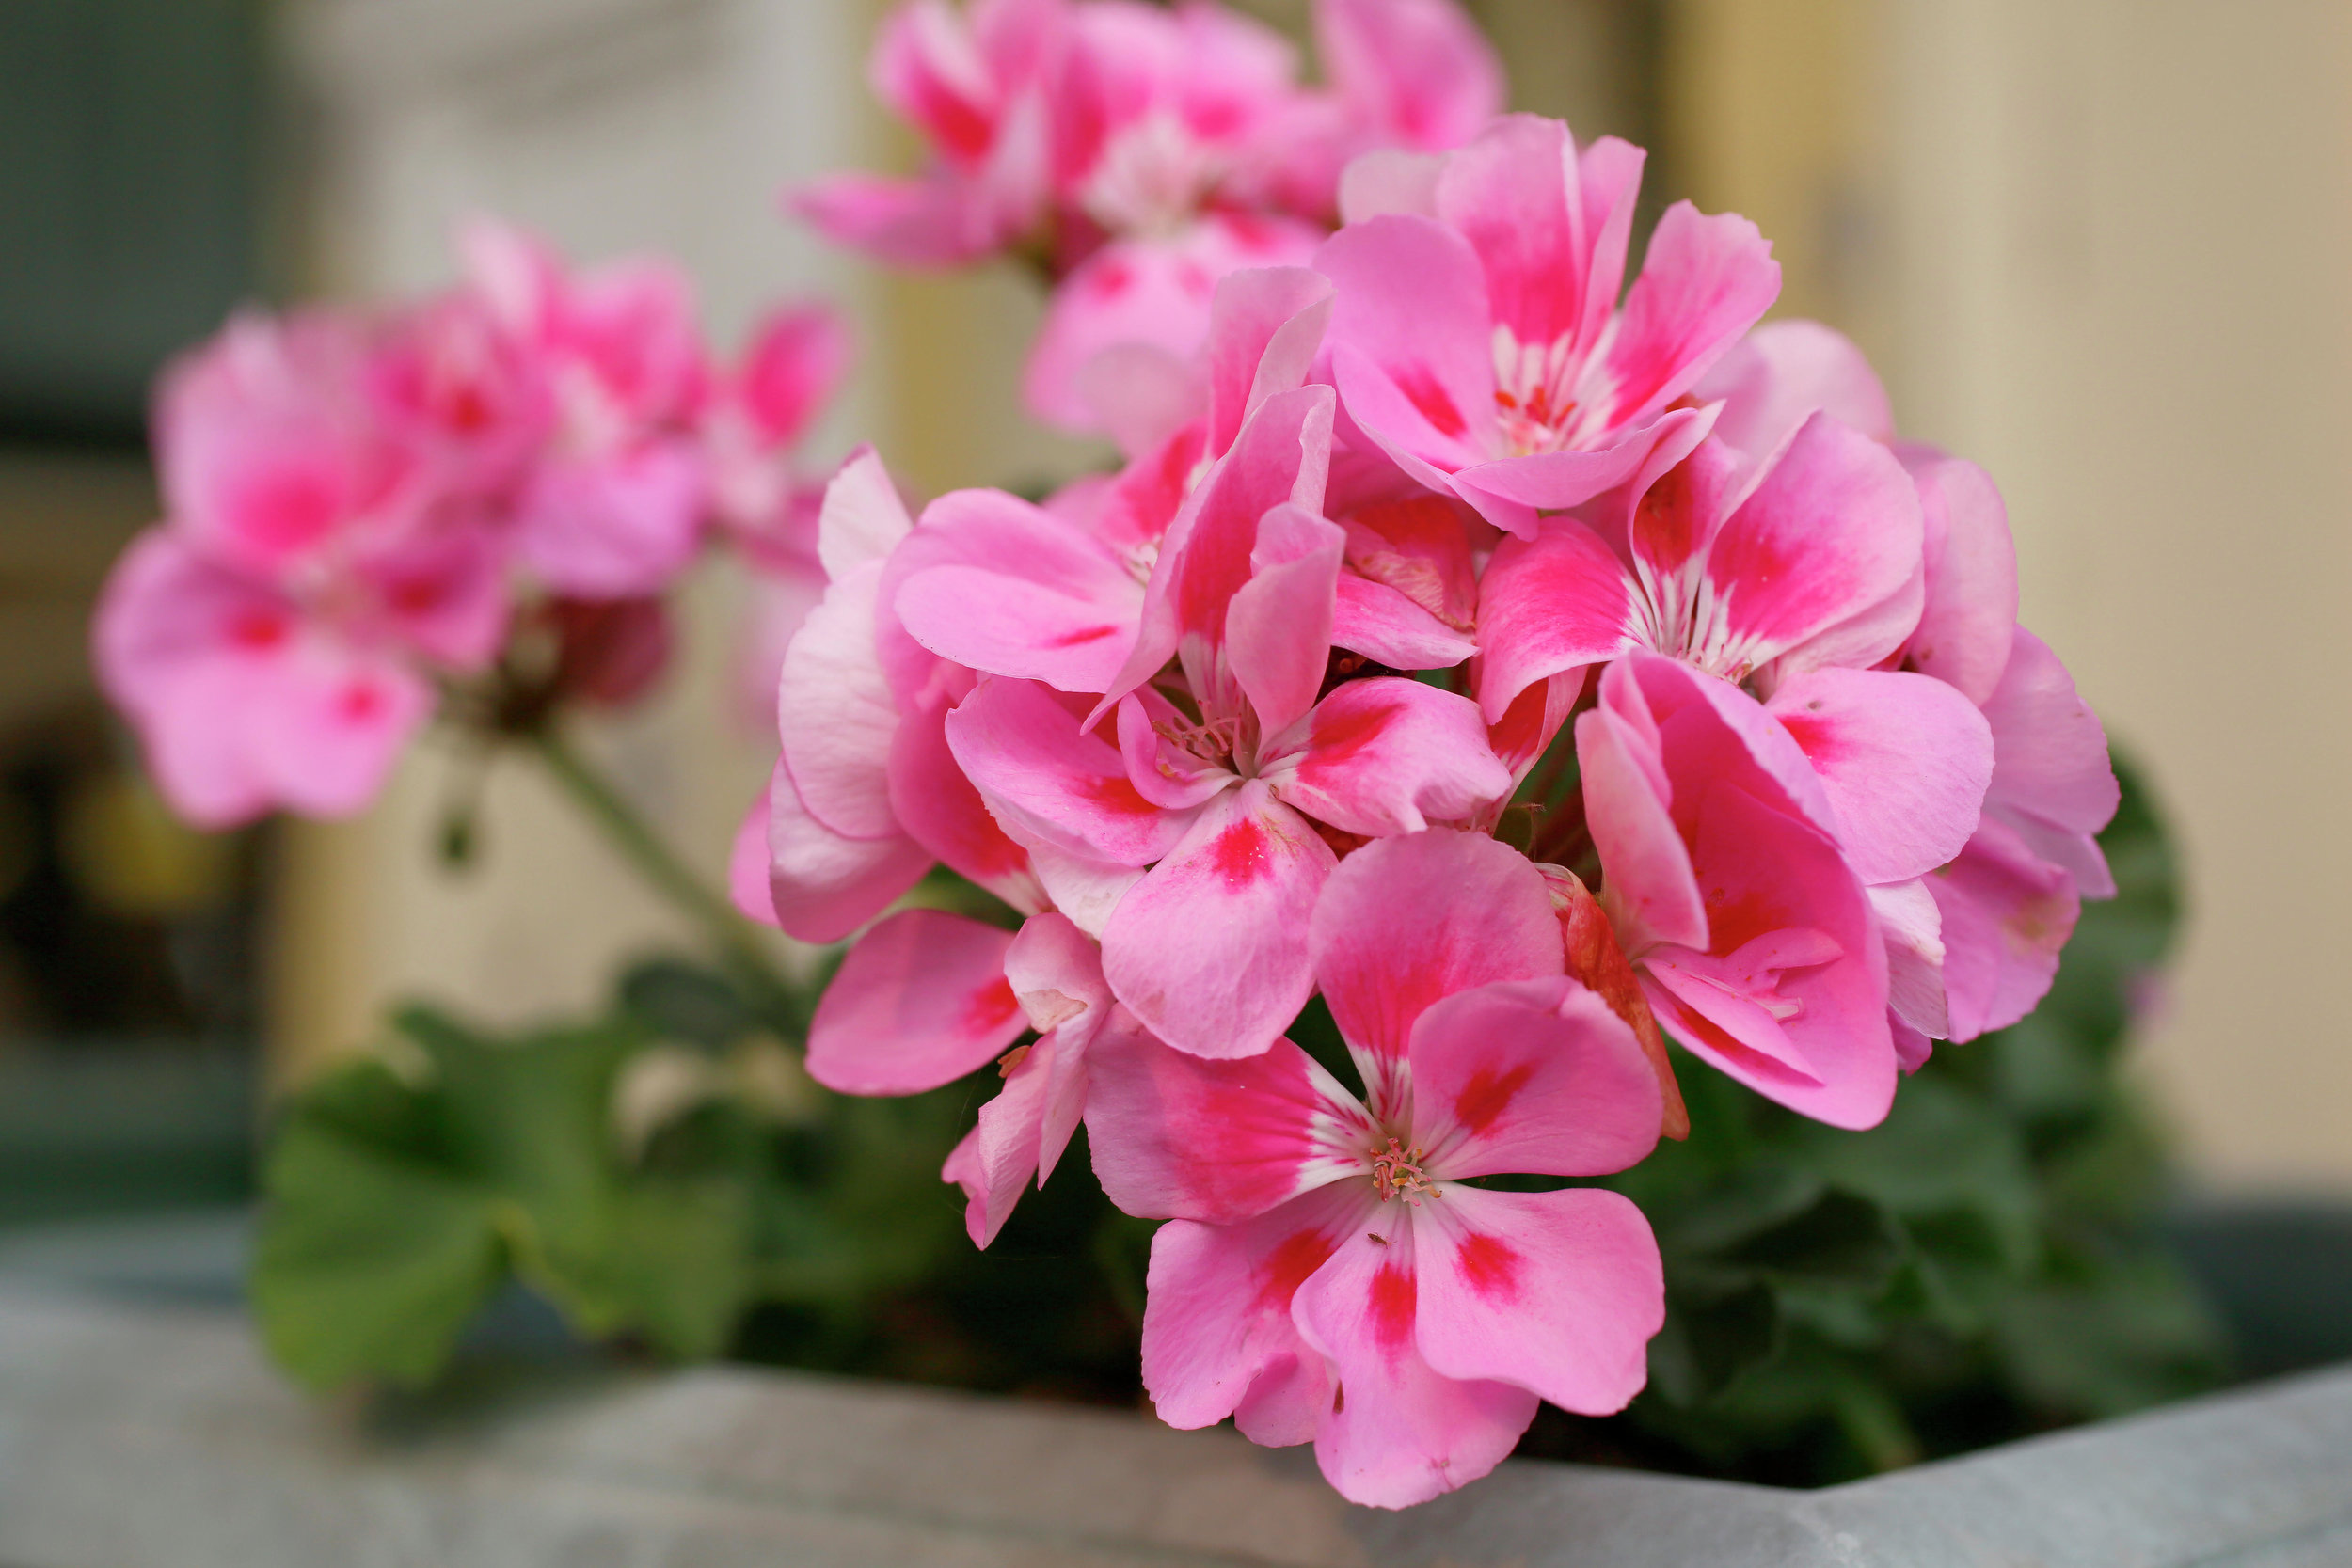 Geraniums are one way that the Detroit Lakes Lions Club raises funds for its annual eye care mission trips to Mazatlan and Cabo San Lucas, Mexico. This year's geranium fundraiser is set for May 9-11 at St. Luke's Episcopal Church in Detroit Lakes. (Forum News Service photo)